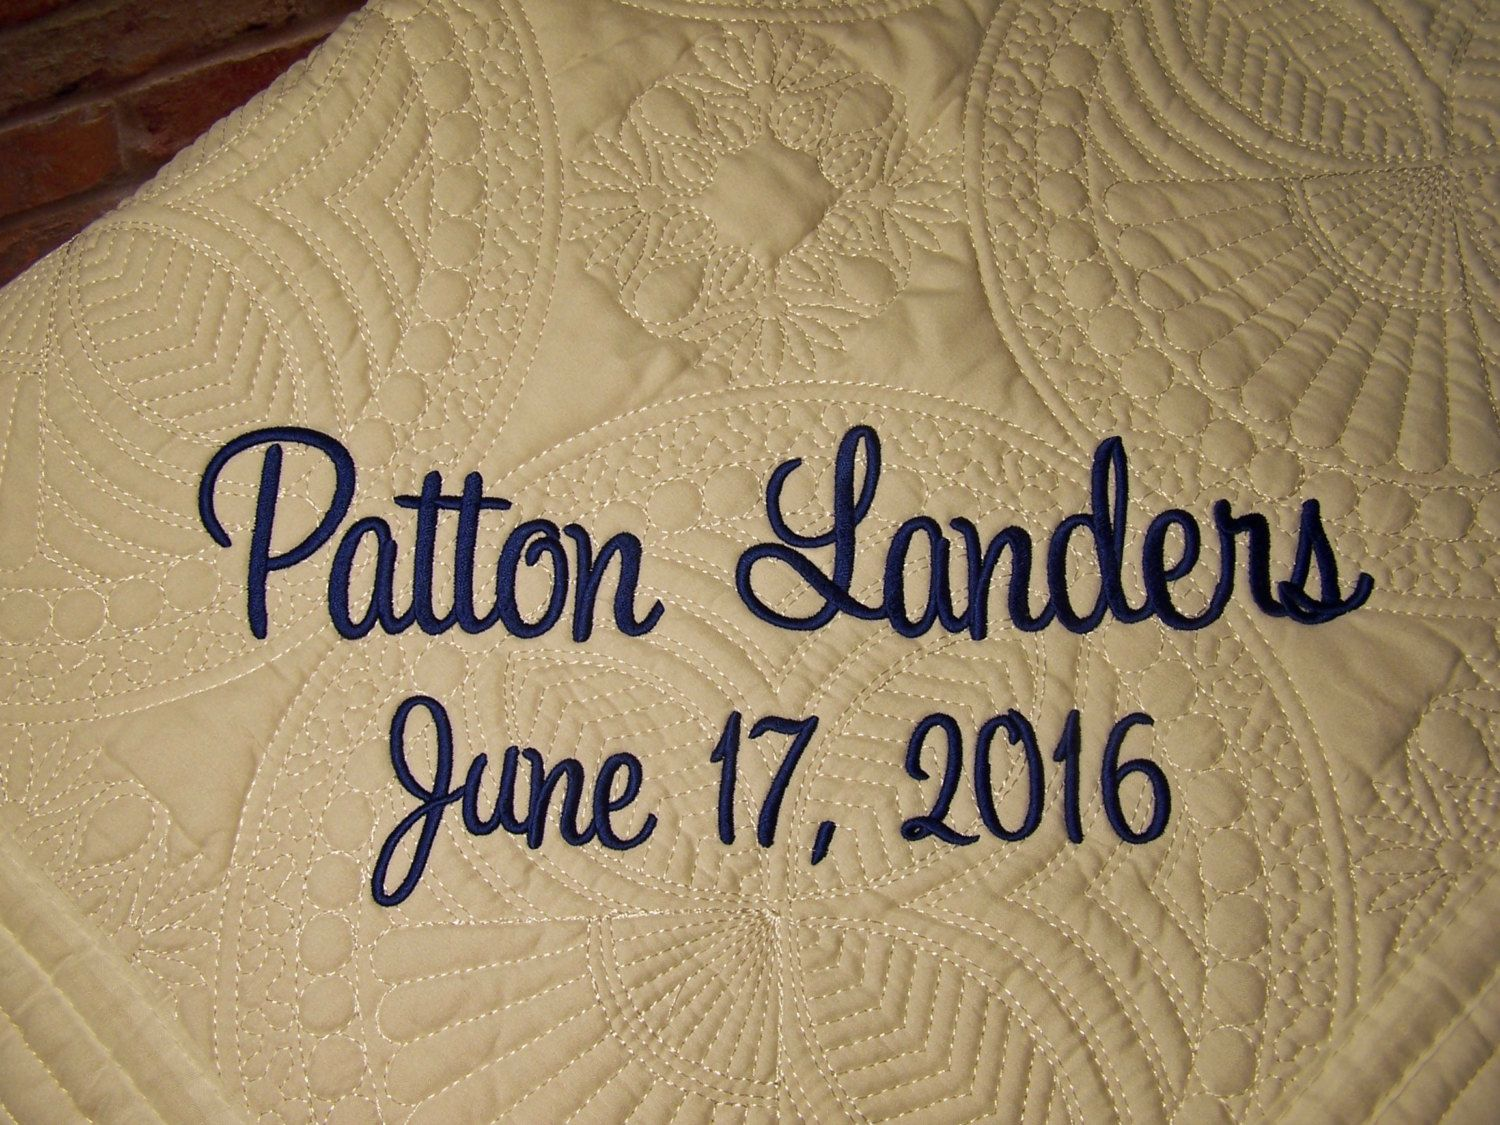 Personalized baby quilt personalized quilt quilt baby quilt personalized baby quilt personalized quilt quilt baby quilt monogrammed quilt baby blanket quilted crib blanket baby gift throws negle Image collections